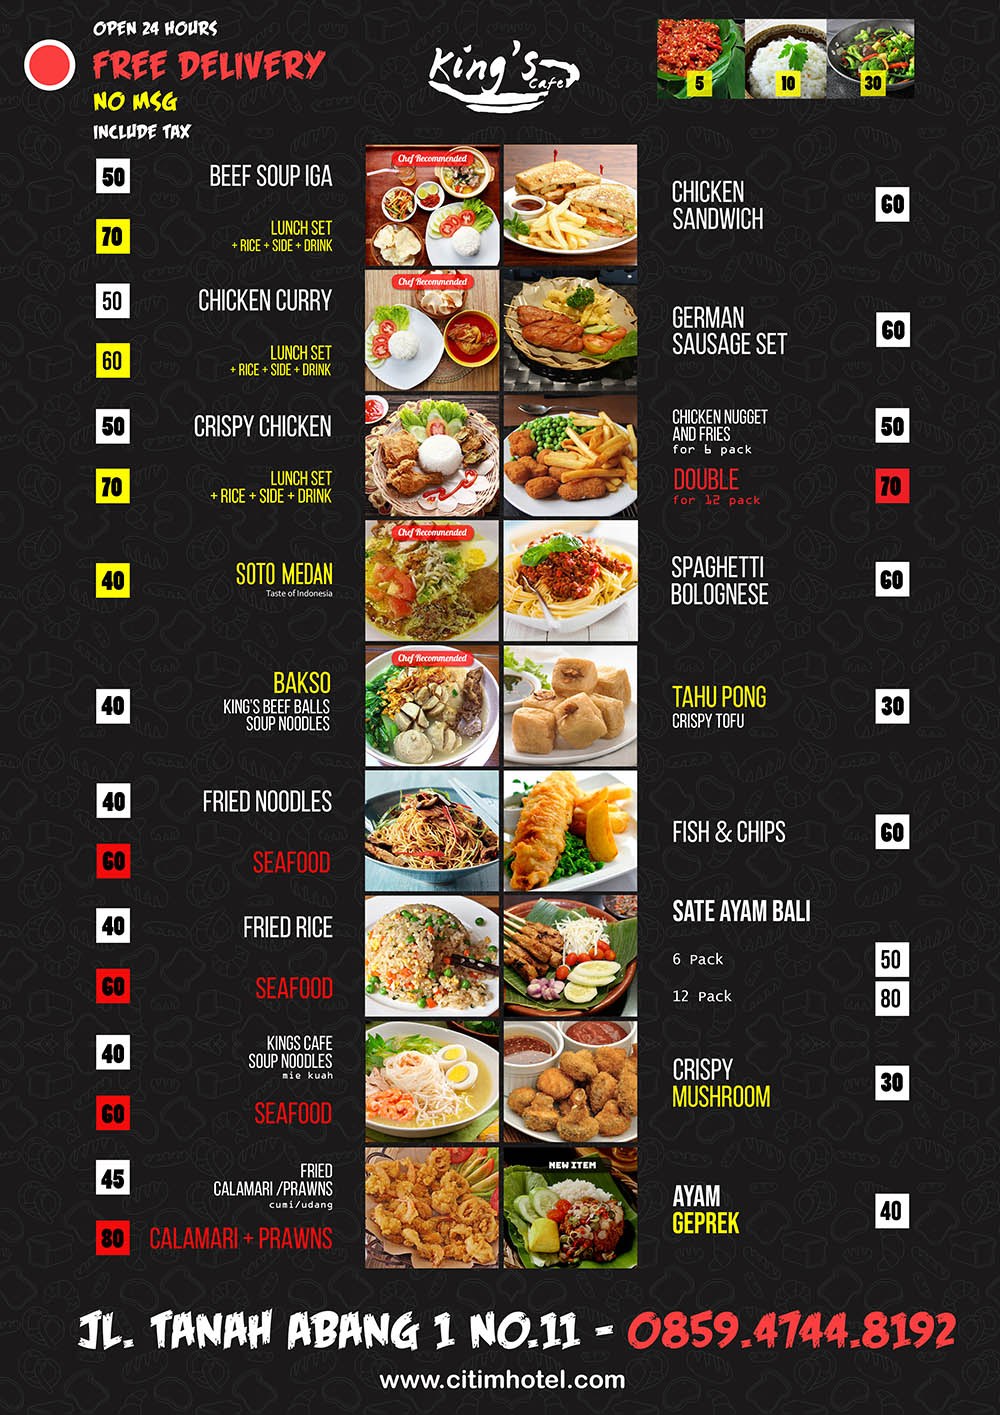 kings cafe - menu utama 2